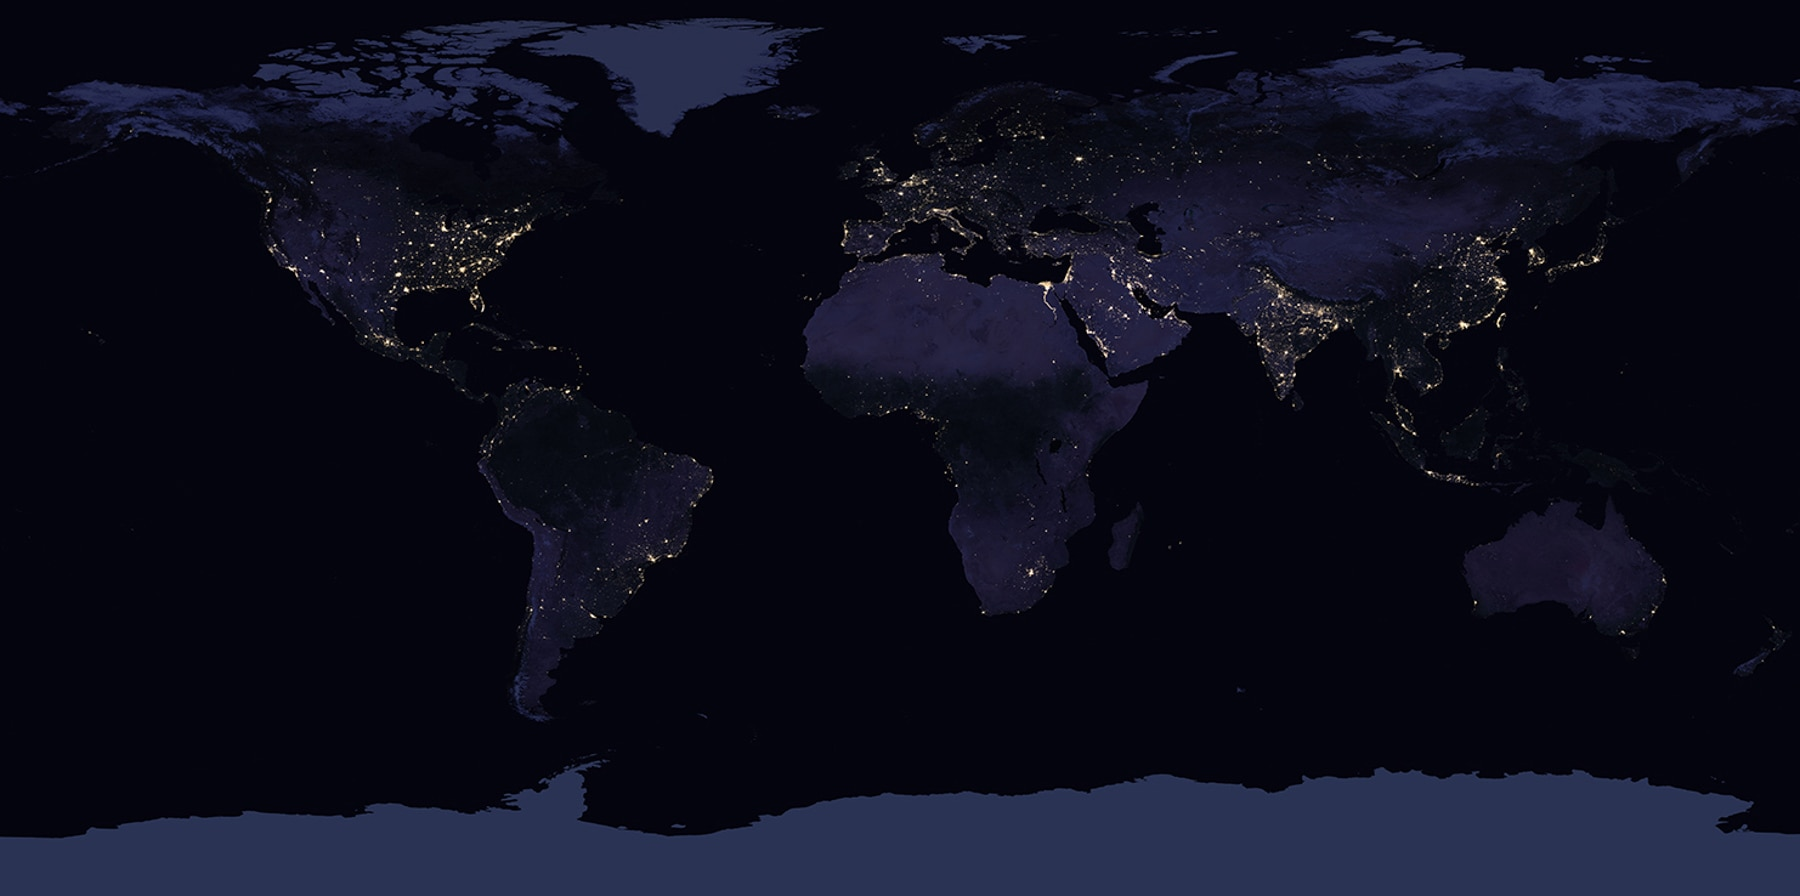 The Earth at night (NASA)